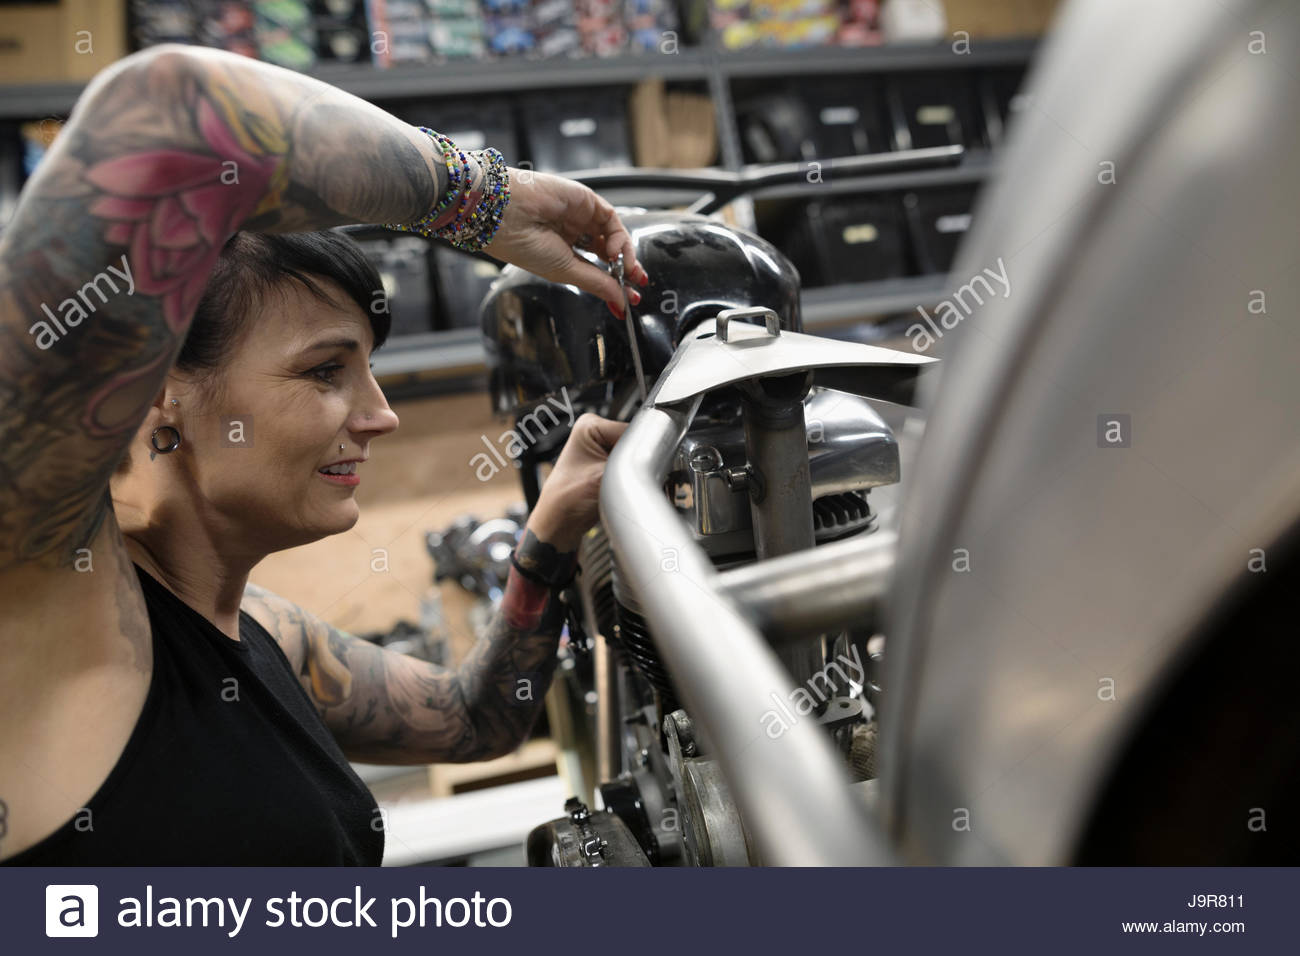 Female motorcycle mechanic with tattoos fixing motorcycle in auto repair shop - Stock Image